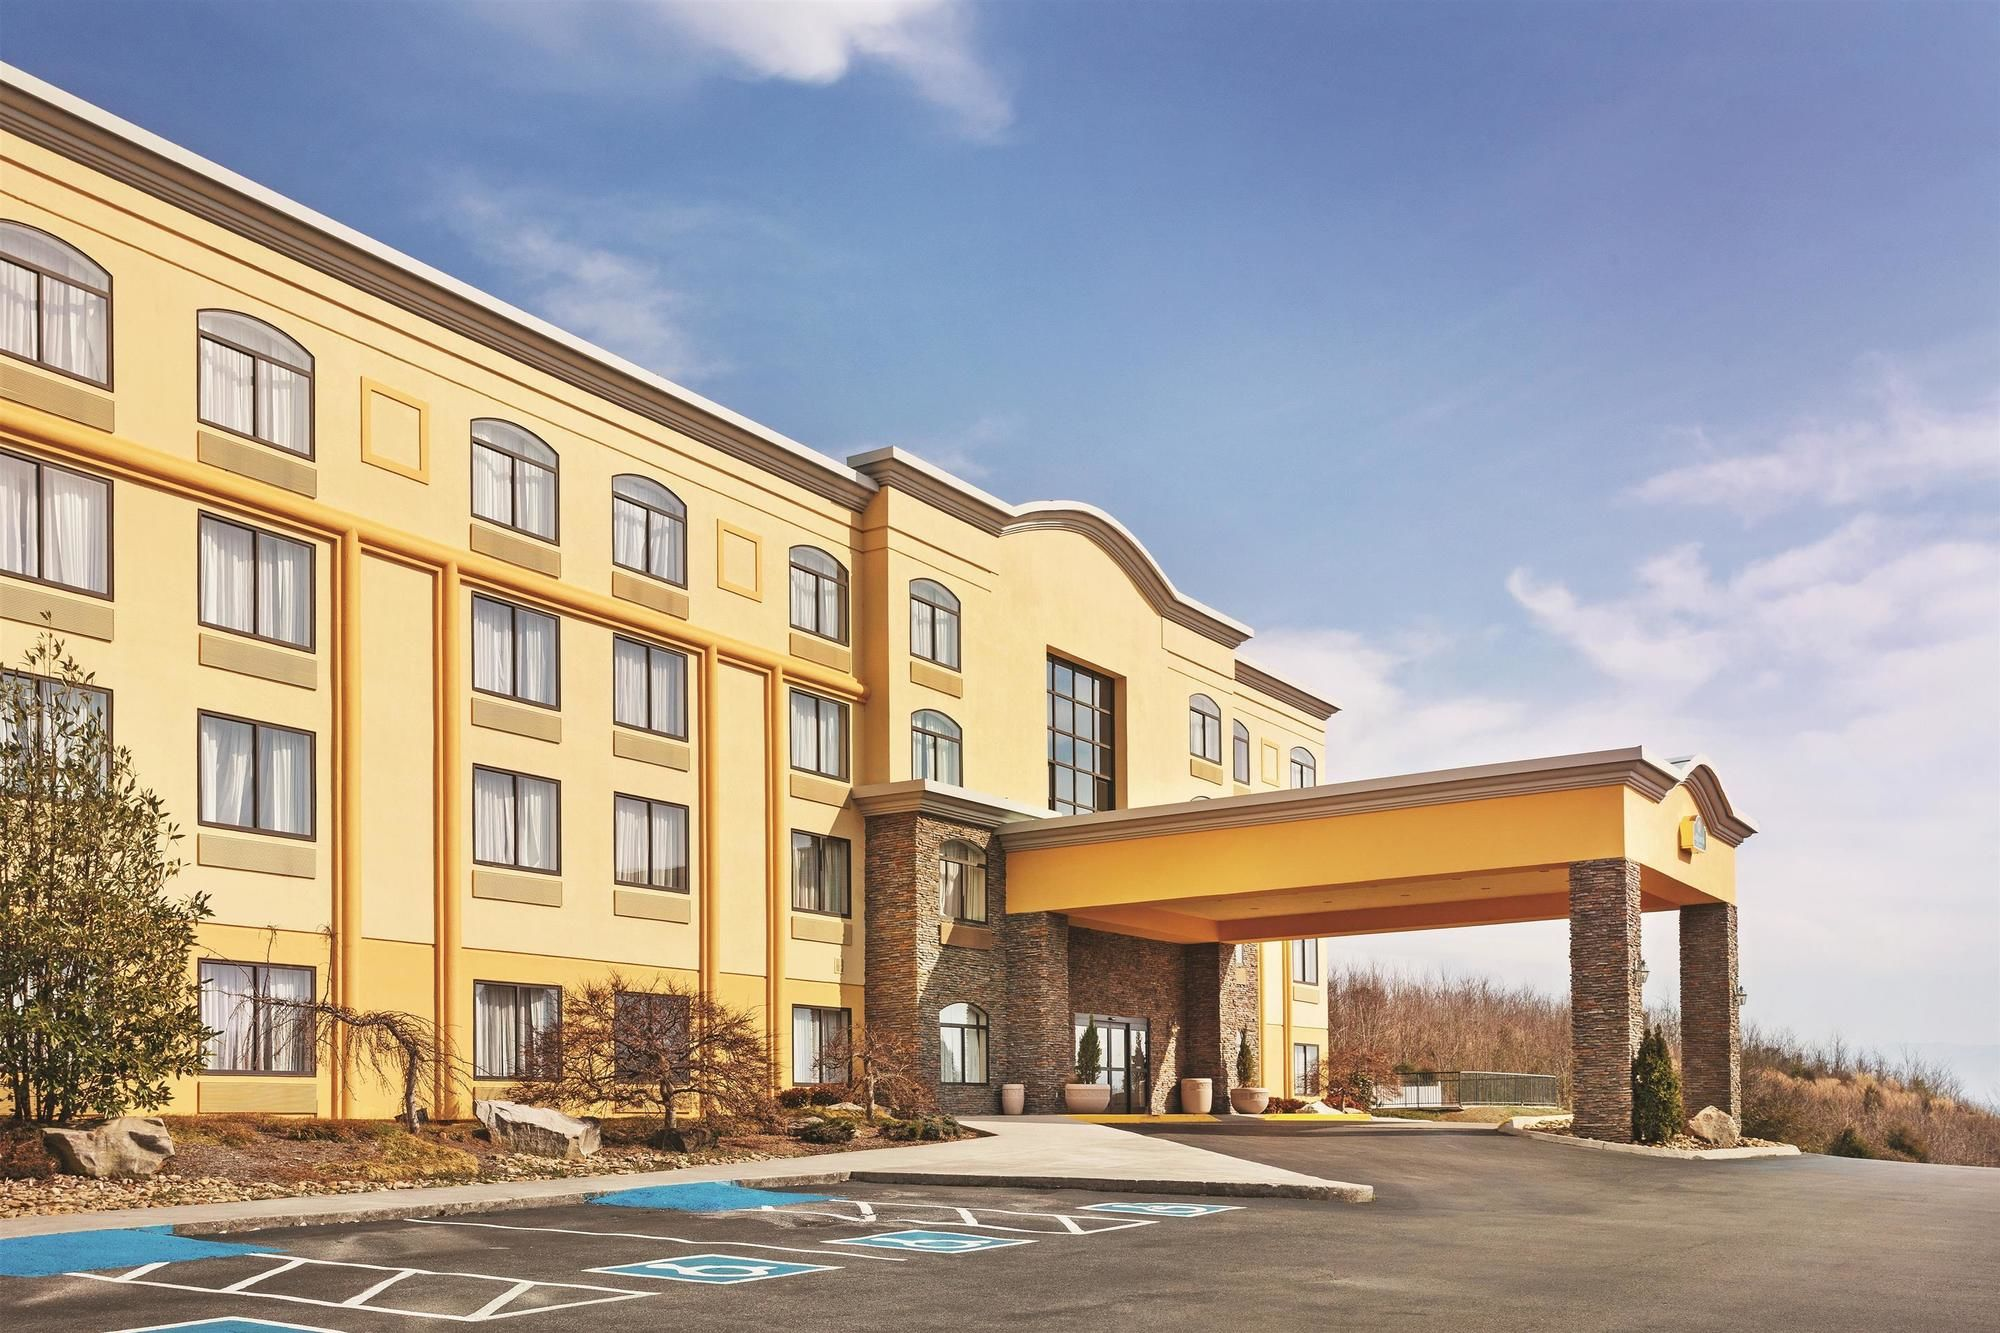 LaQuinta Inn & Suites in Sevierville, TN